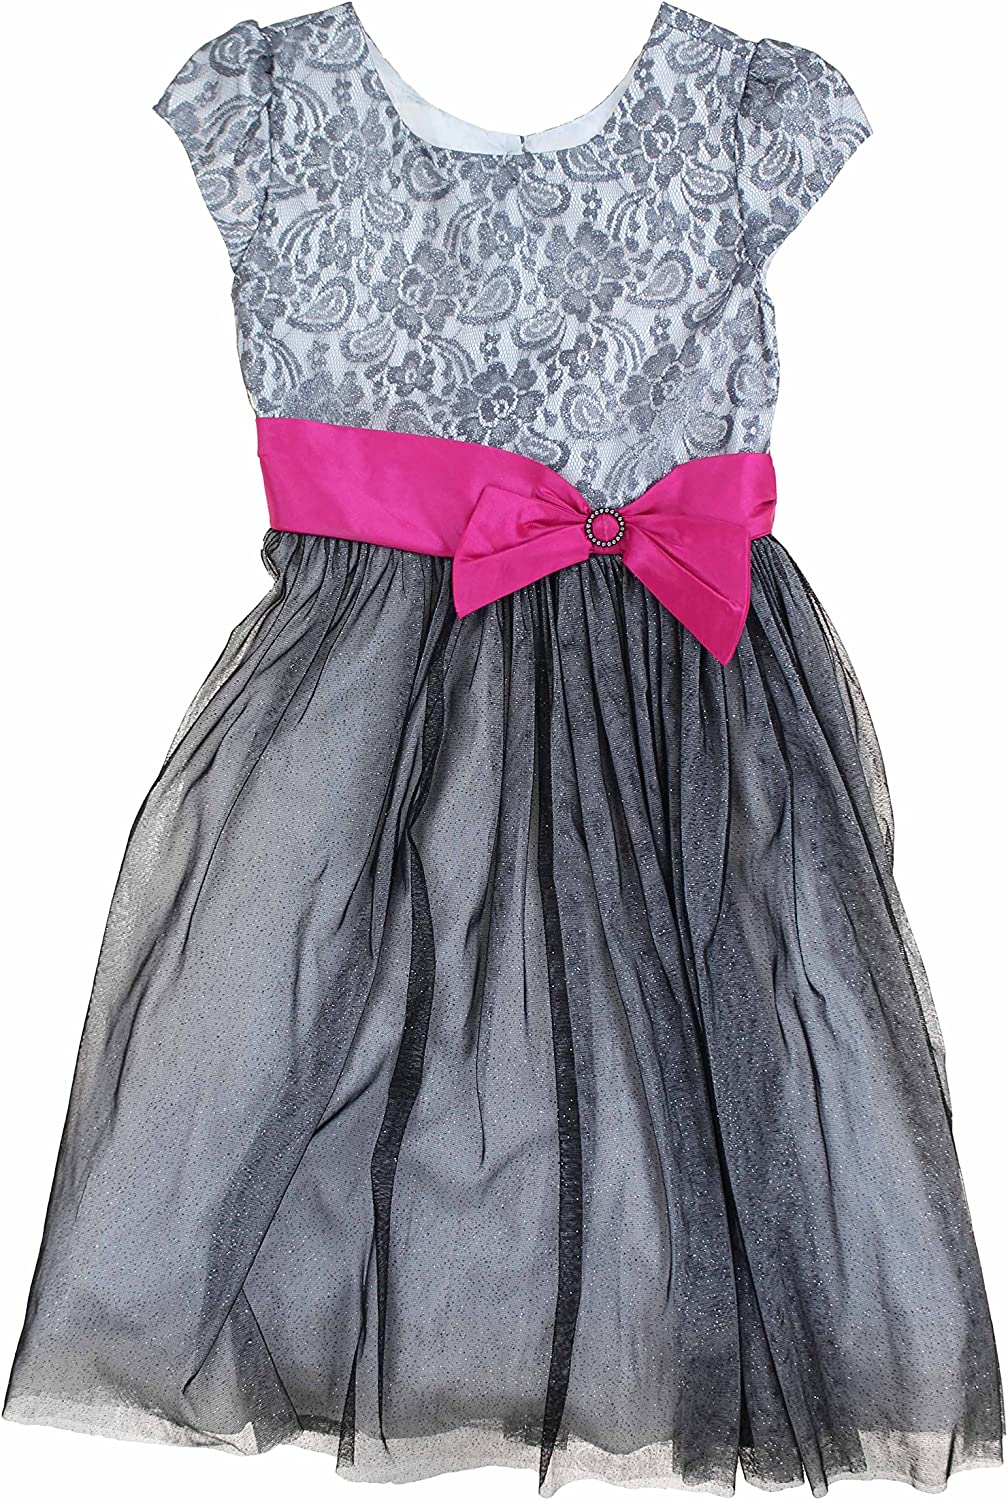 Jona Michelle Girl's Blue Special Occasion Party Dress